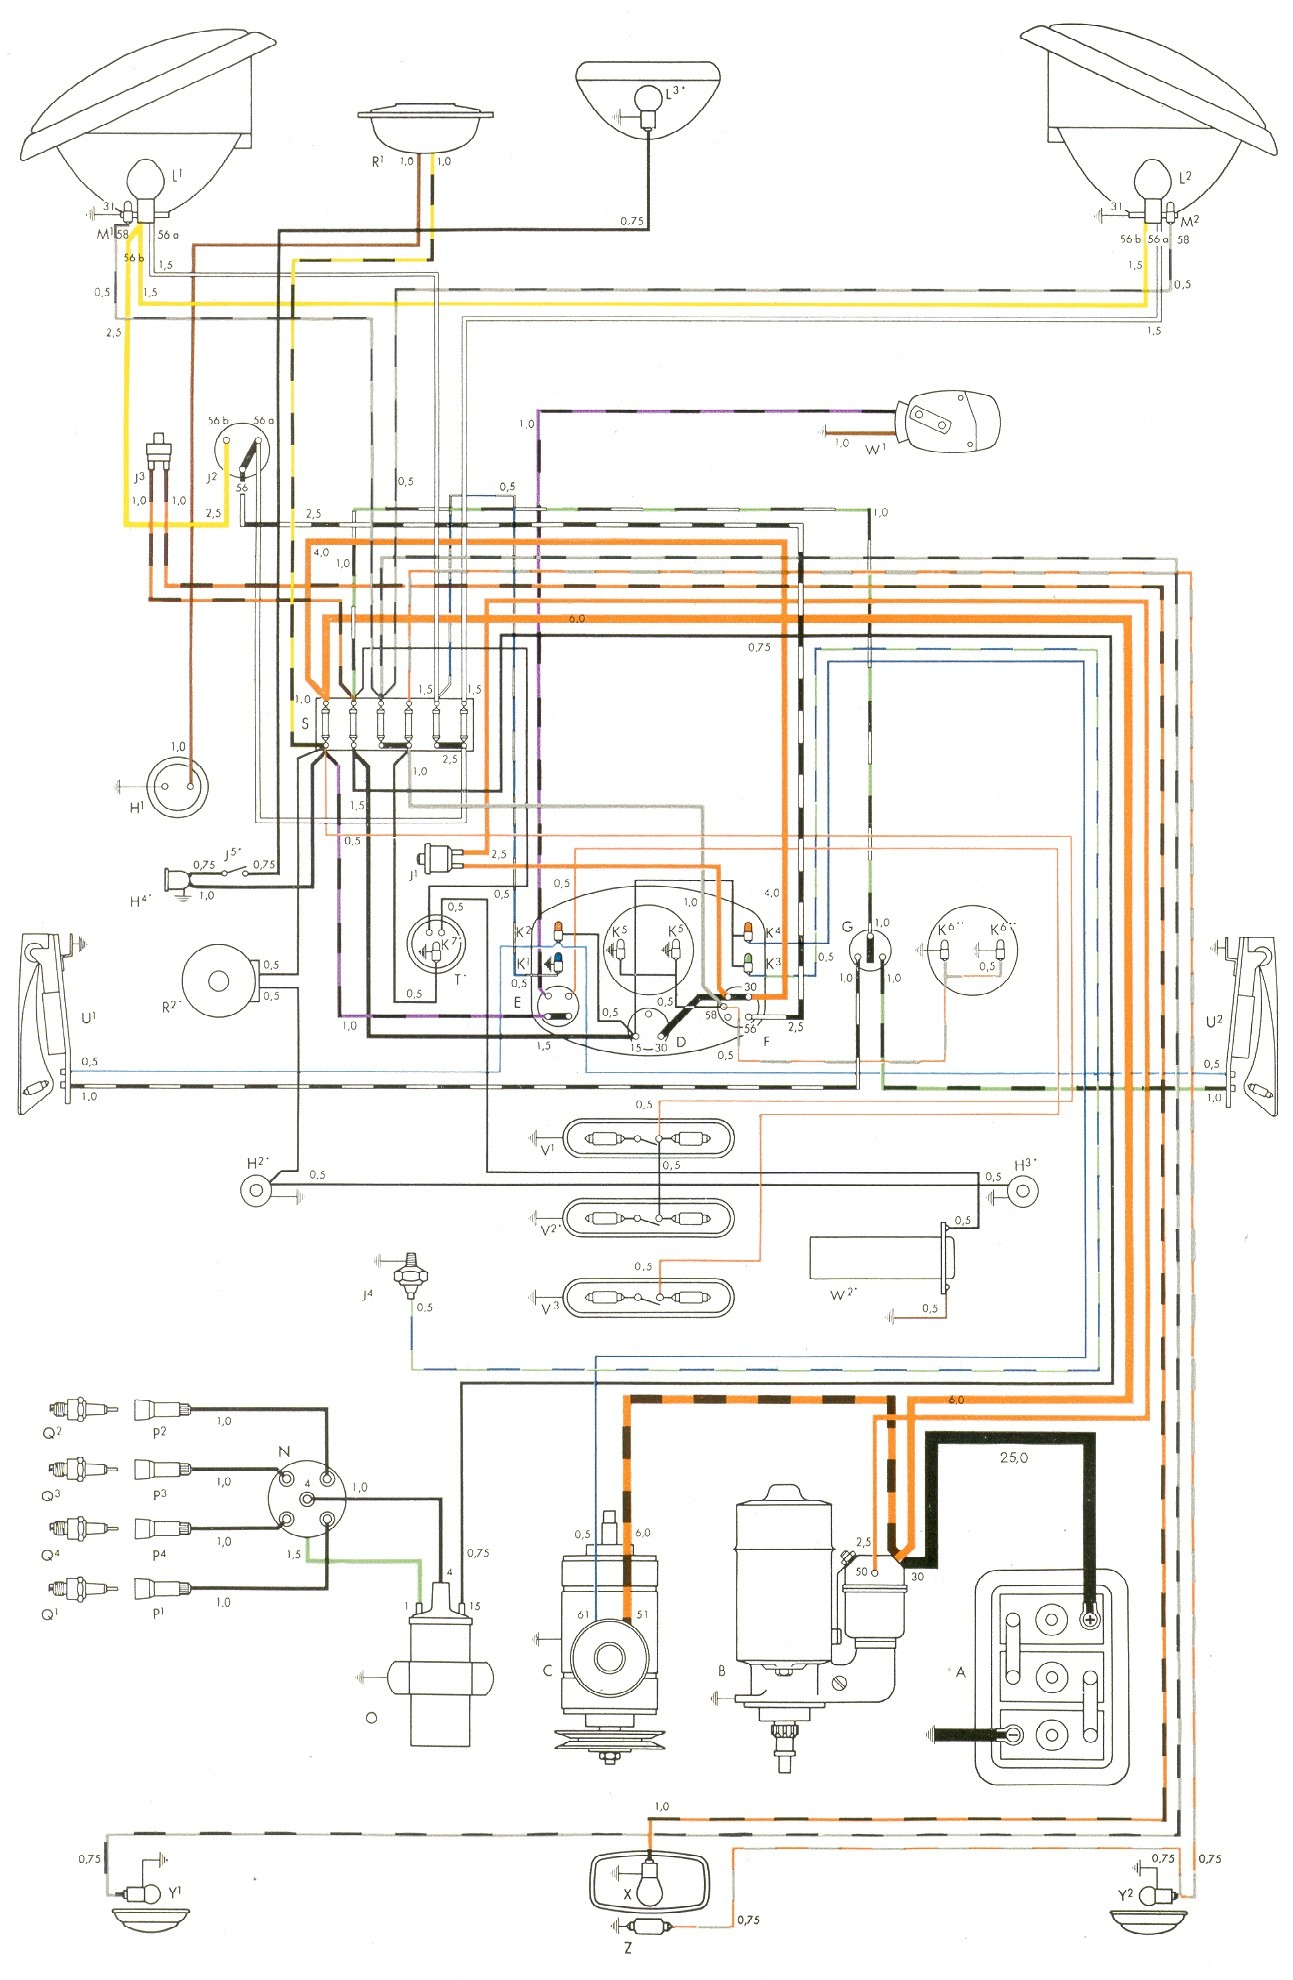 Vw engine wiring diagram residential electrical symbols beetle engine diagram 1962 vw bug wiring diagram free image wiring rh detoxicrecenze com vw 2e engine wiring diagram vw t25 engine wiring diagram publicscrutiny Choice Image